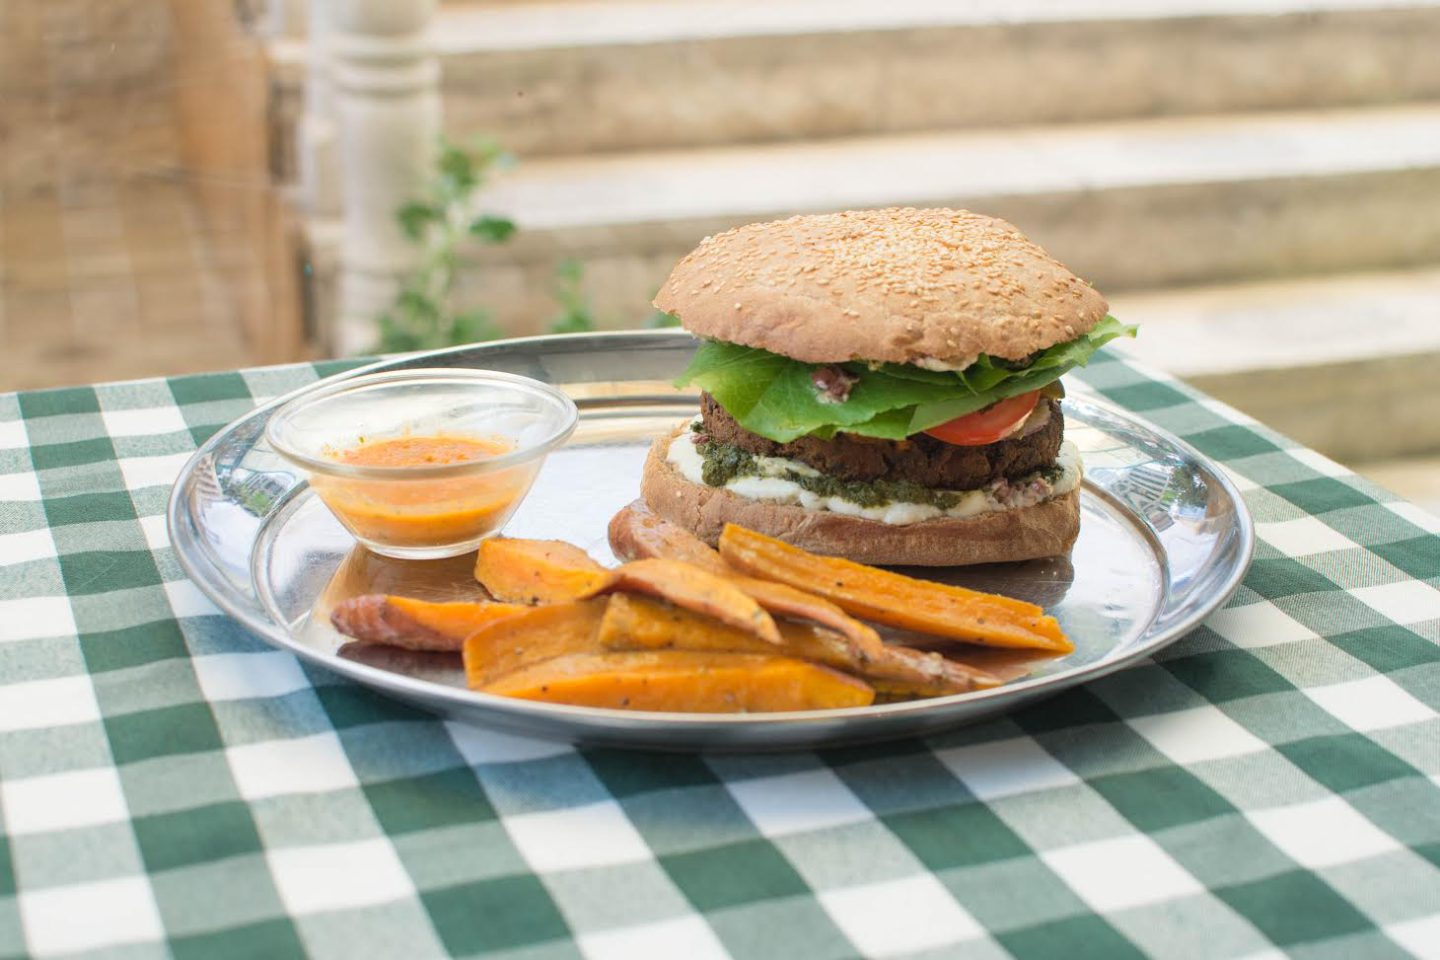 This Jerusalem restaurant combines vegan, kosher and cozy in one homely place | The Switchers